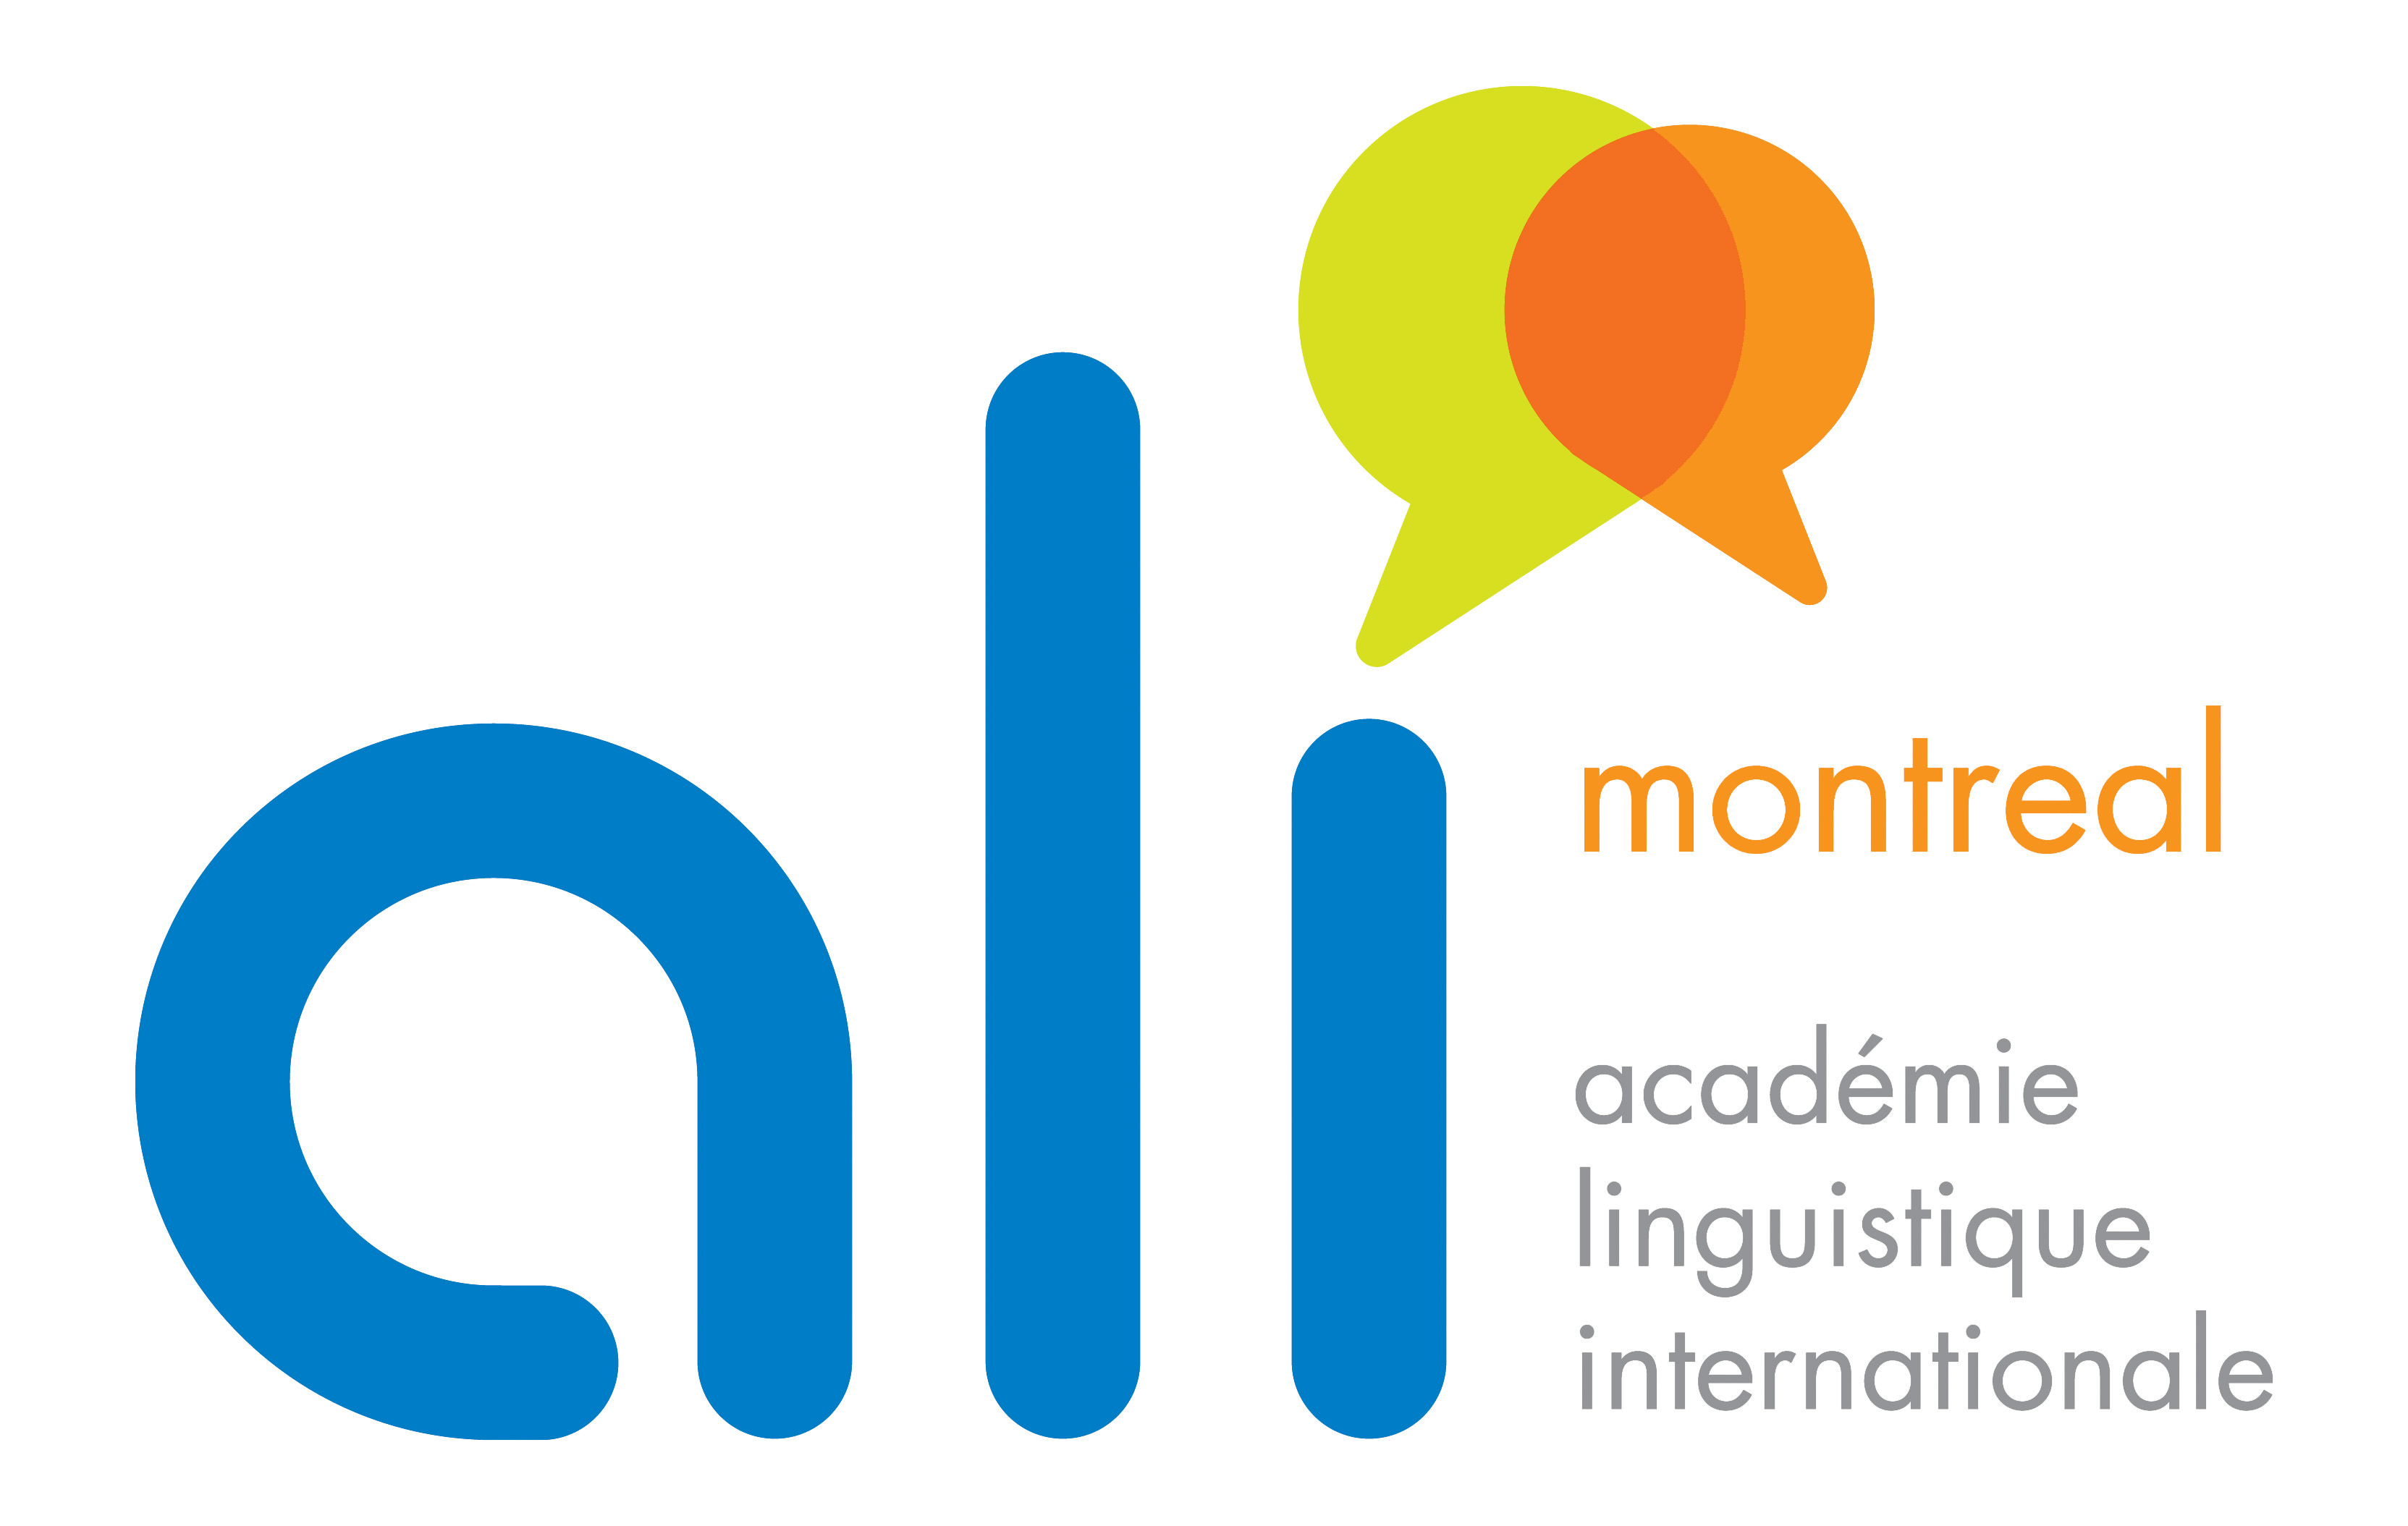 Academie Linguistique Internationale (ALI)